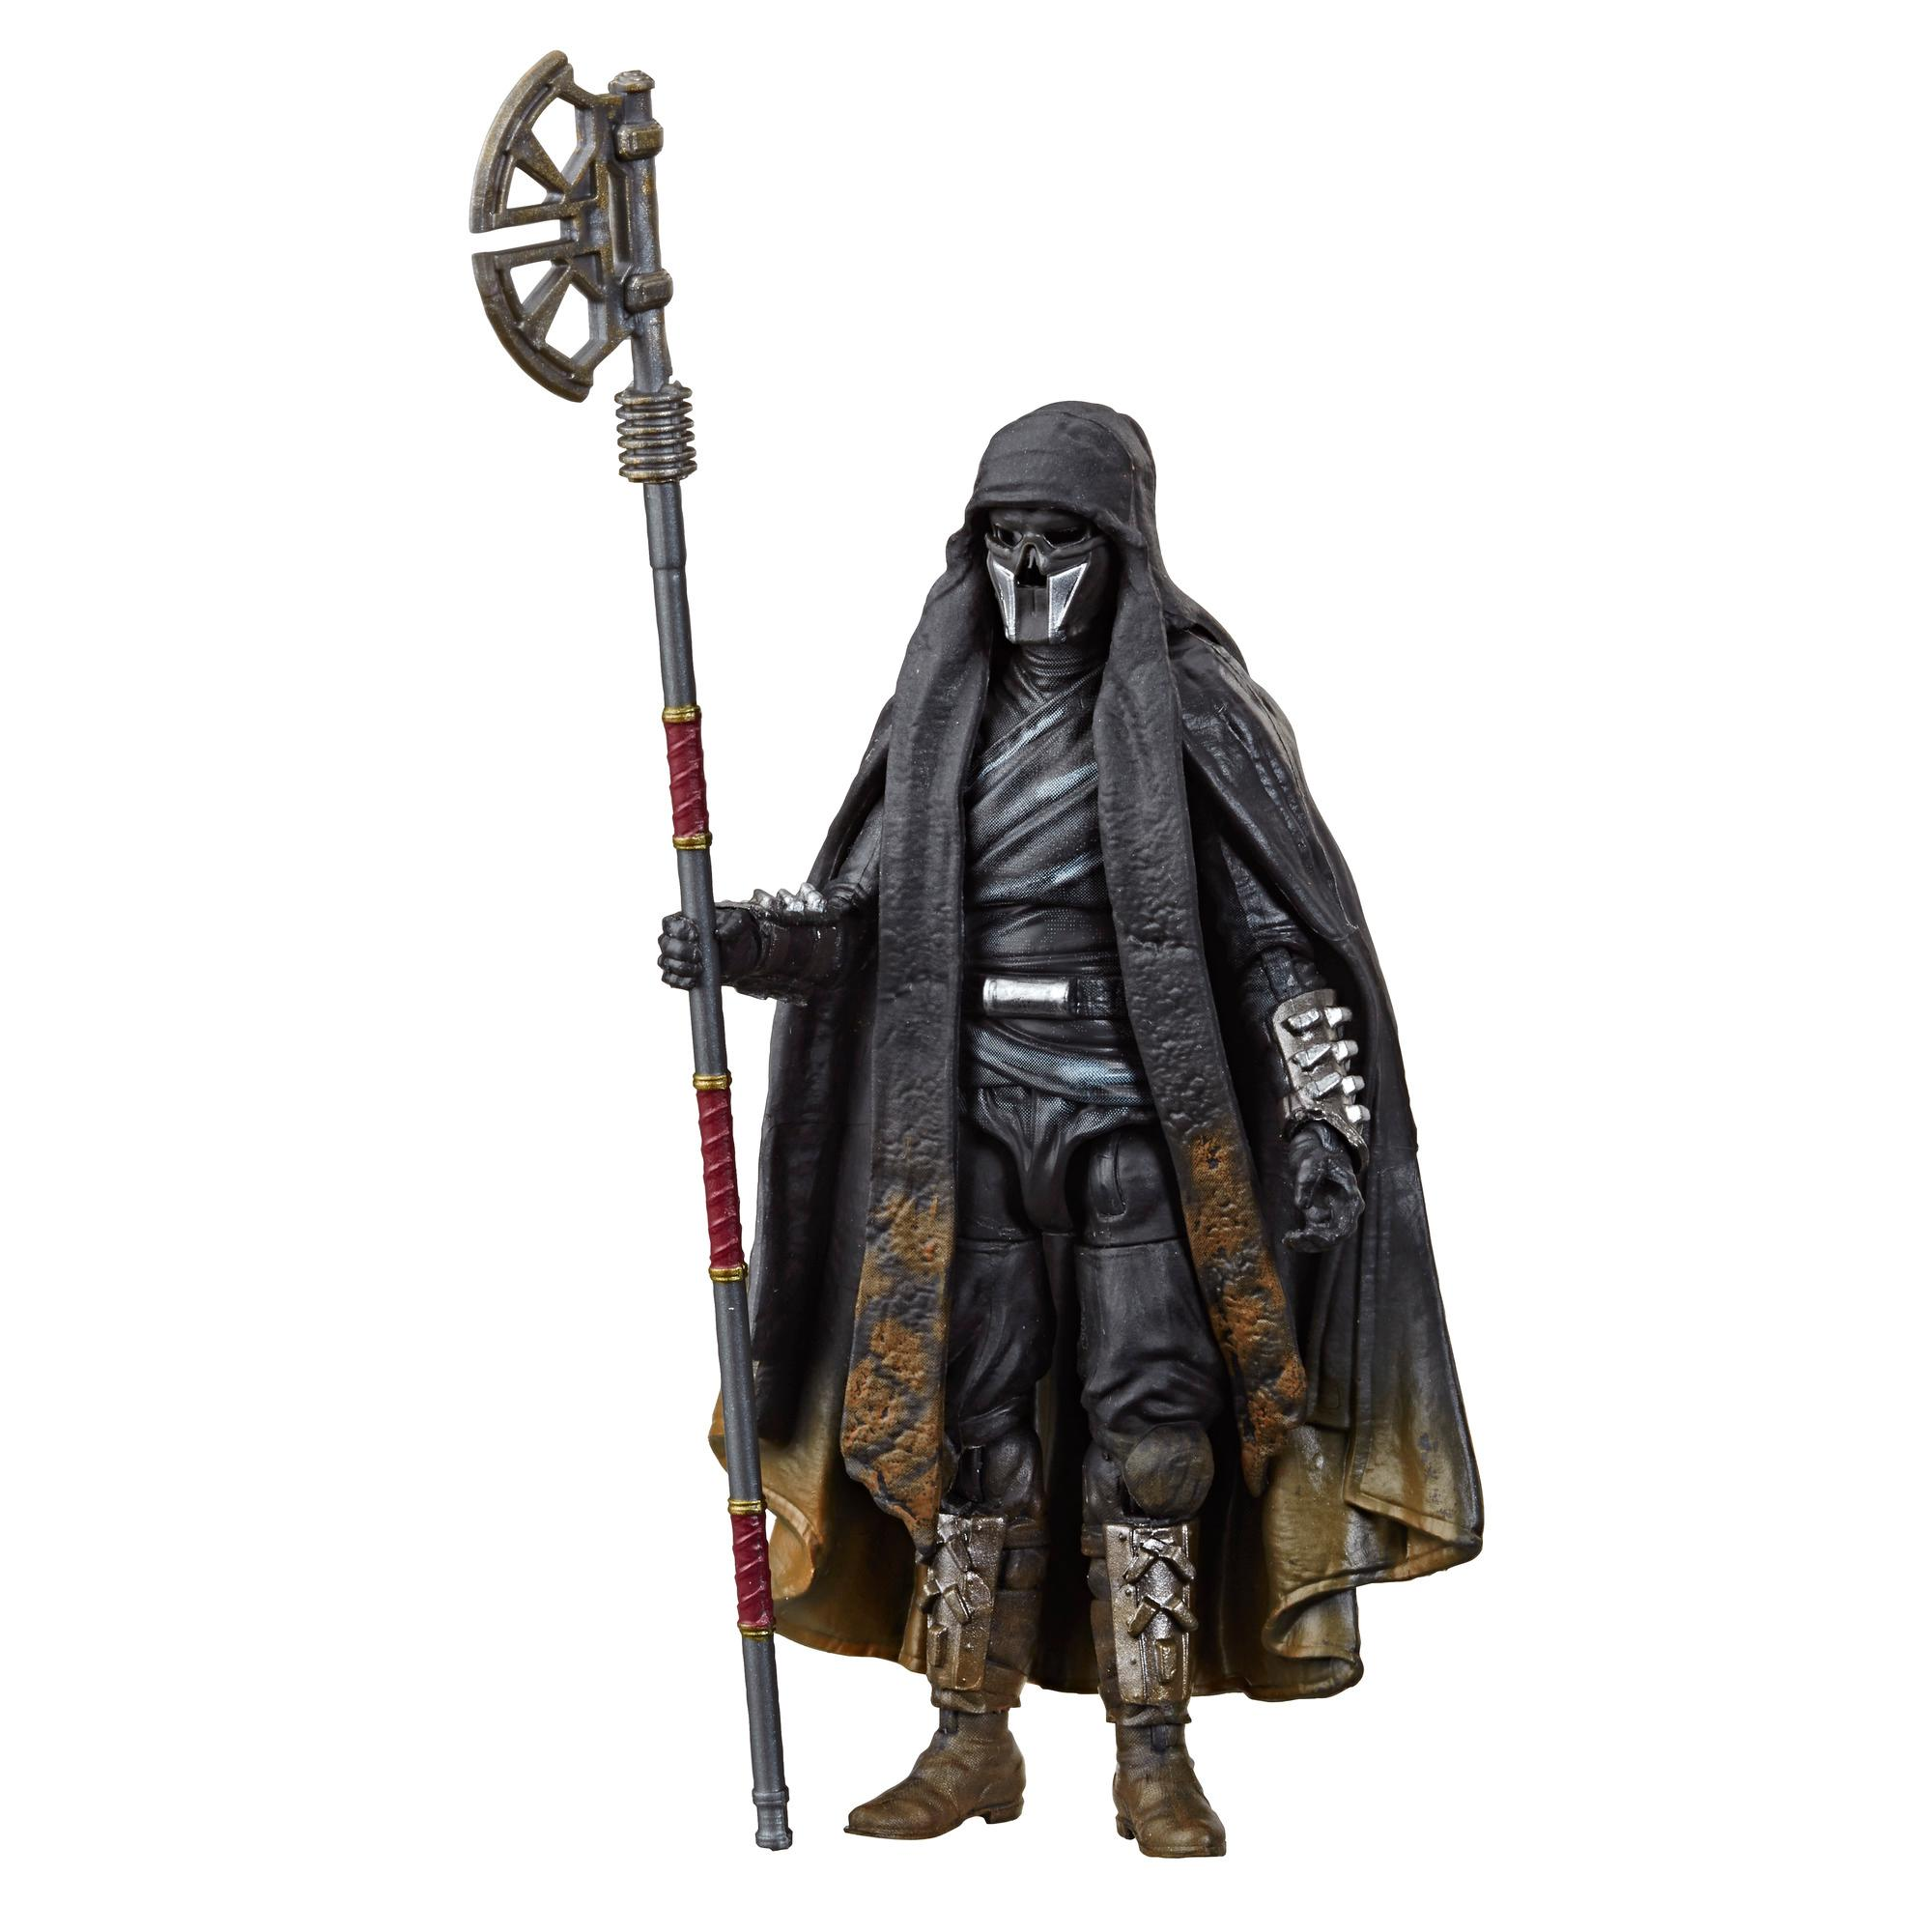 Star Wars The Vintage Collection Star Wars: The Rise of Skywalker Knight of Ren (Long Axe) Toy, 3.75-inch Scale Figure